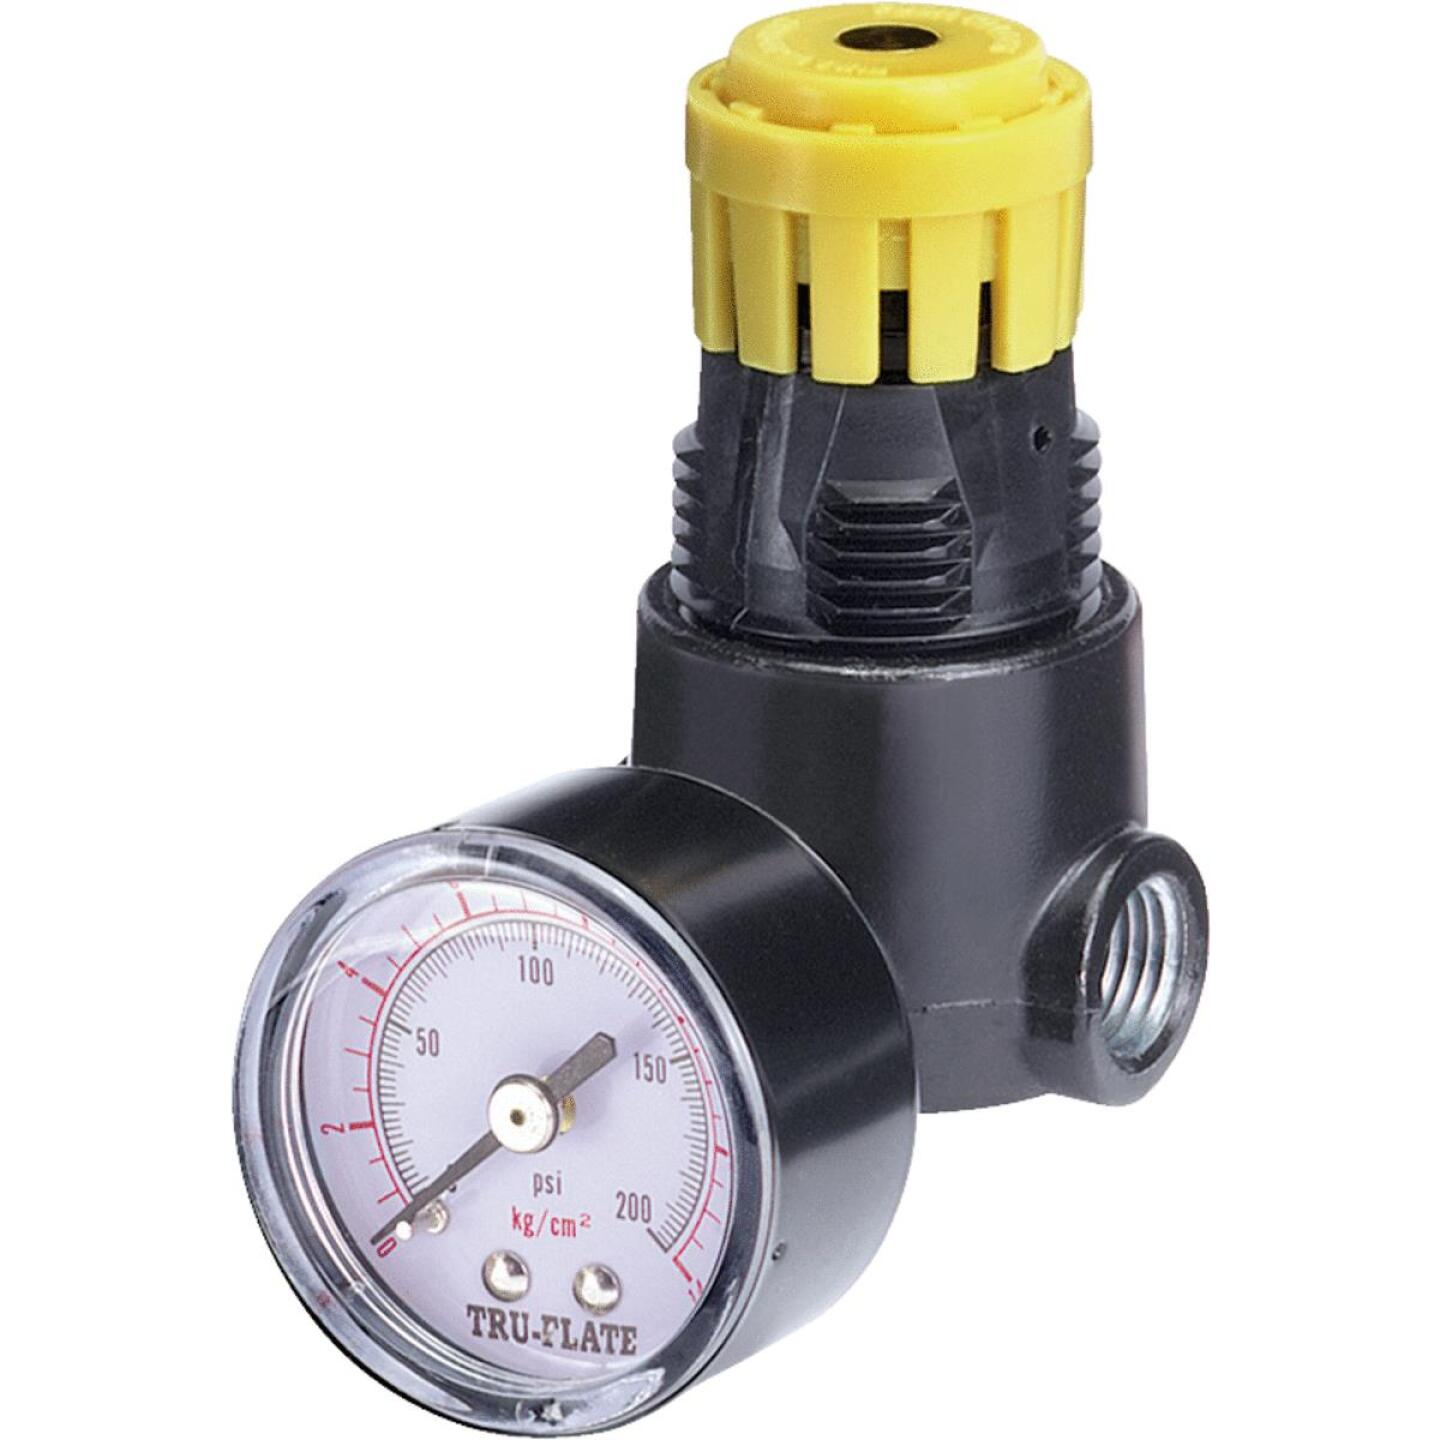 Tru-Flate 1/4 In. NPT 250 PSI Mini Pressure Regulator Image 1